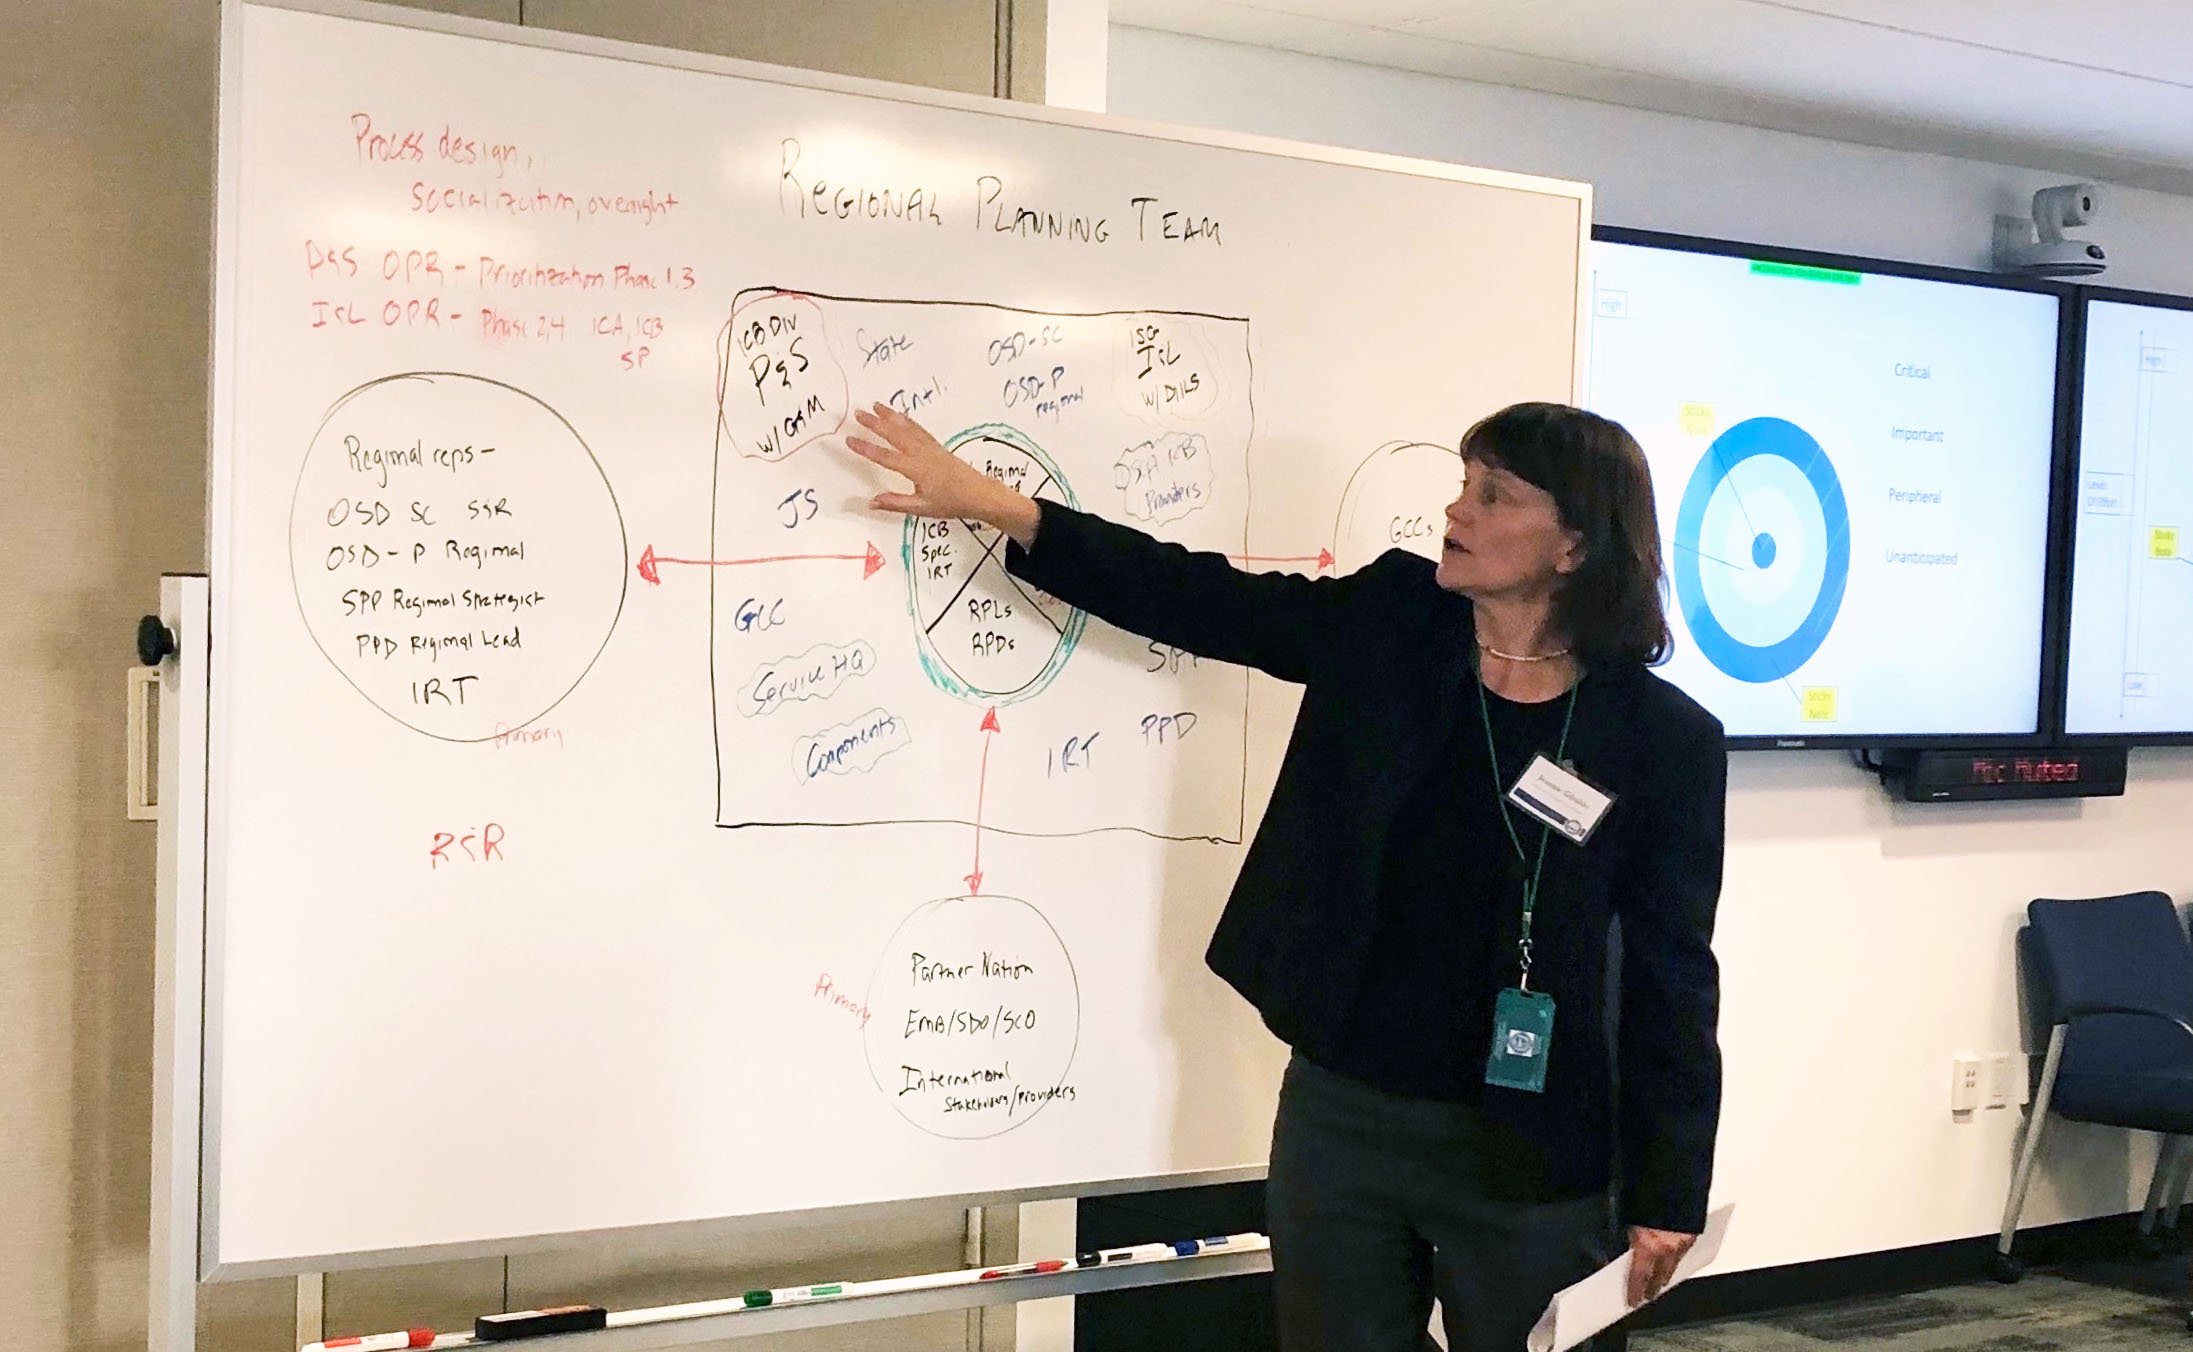 Jeanne Giraldo pointing to a whiteboard while giving a presentation